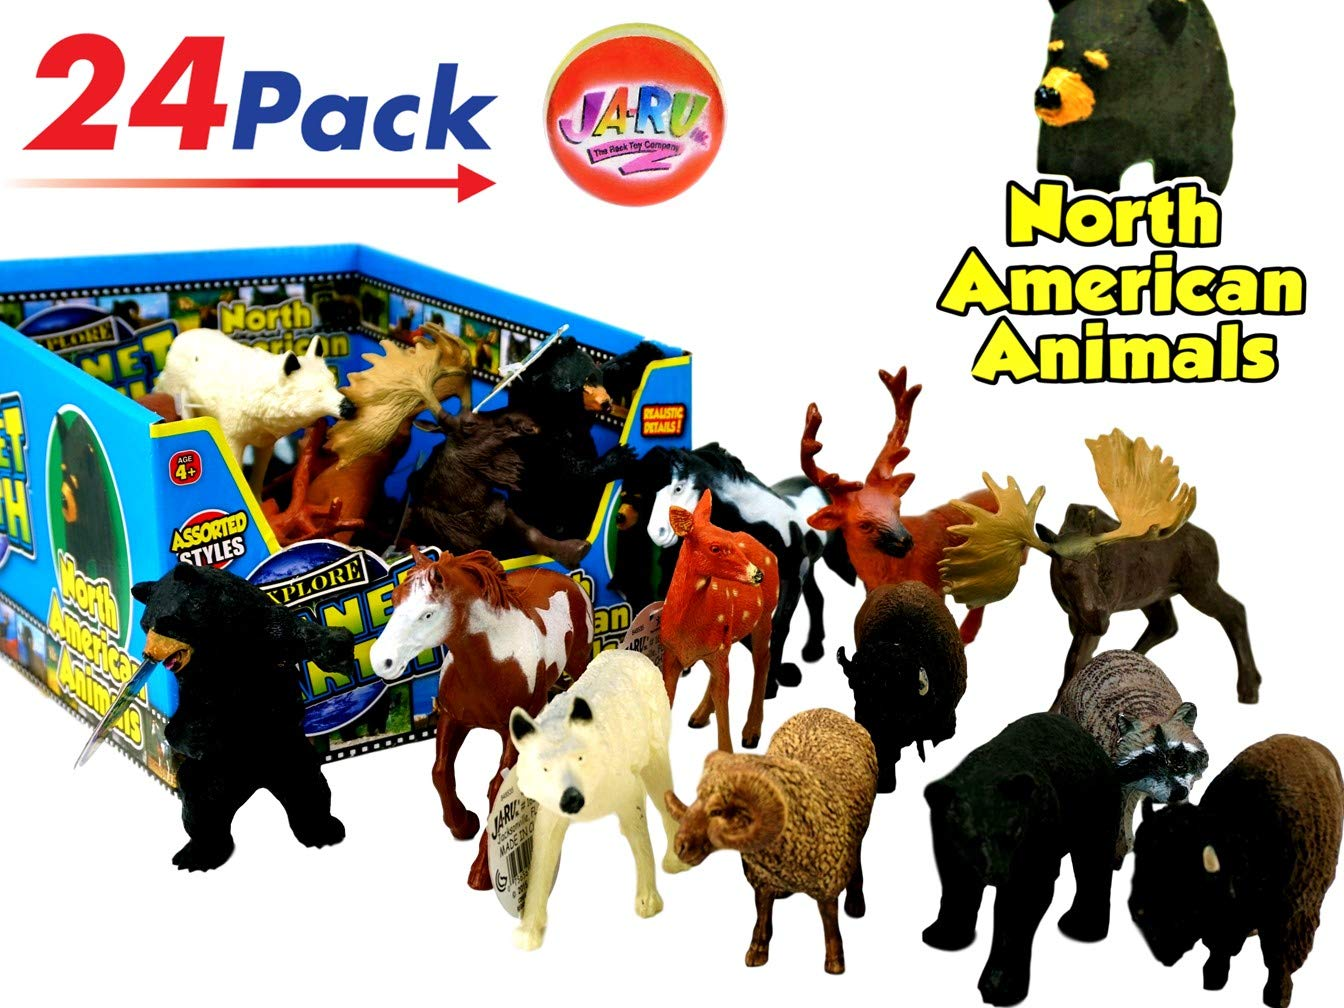 JA-RU North American Animals Realistic Looking (Display Box with 24) and 1 Bouncy Ball Bundle Super Quality | Item #1687-24p